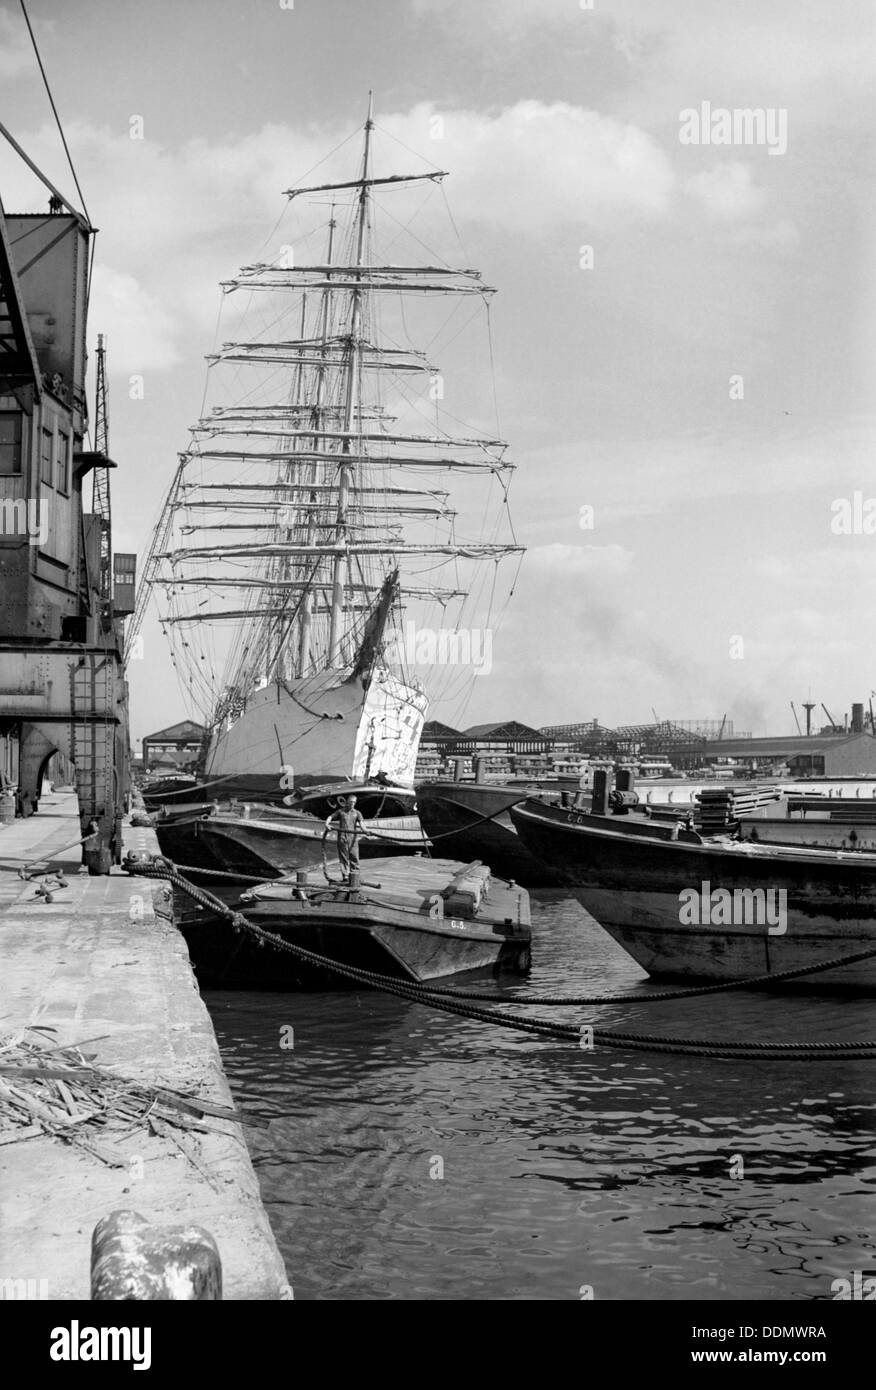 `Viking' barque at the West India Dock, Isle of Dogs, London, c1945-c1965. Artist: SW Rawlings - Stock Image